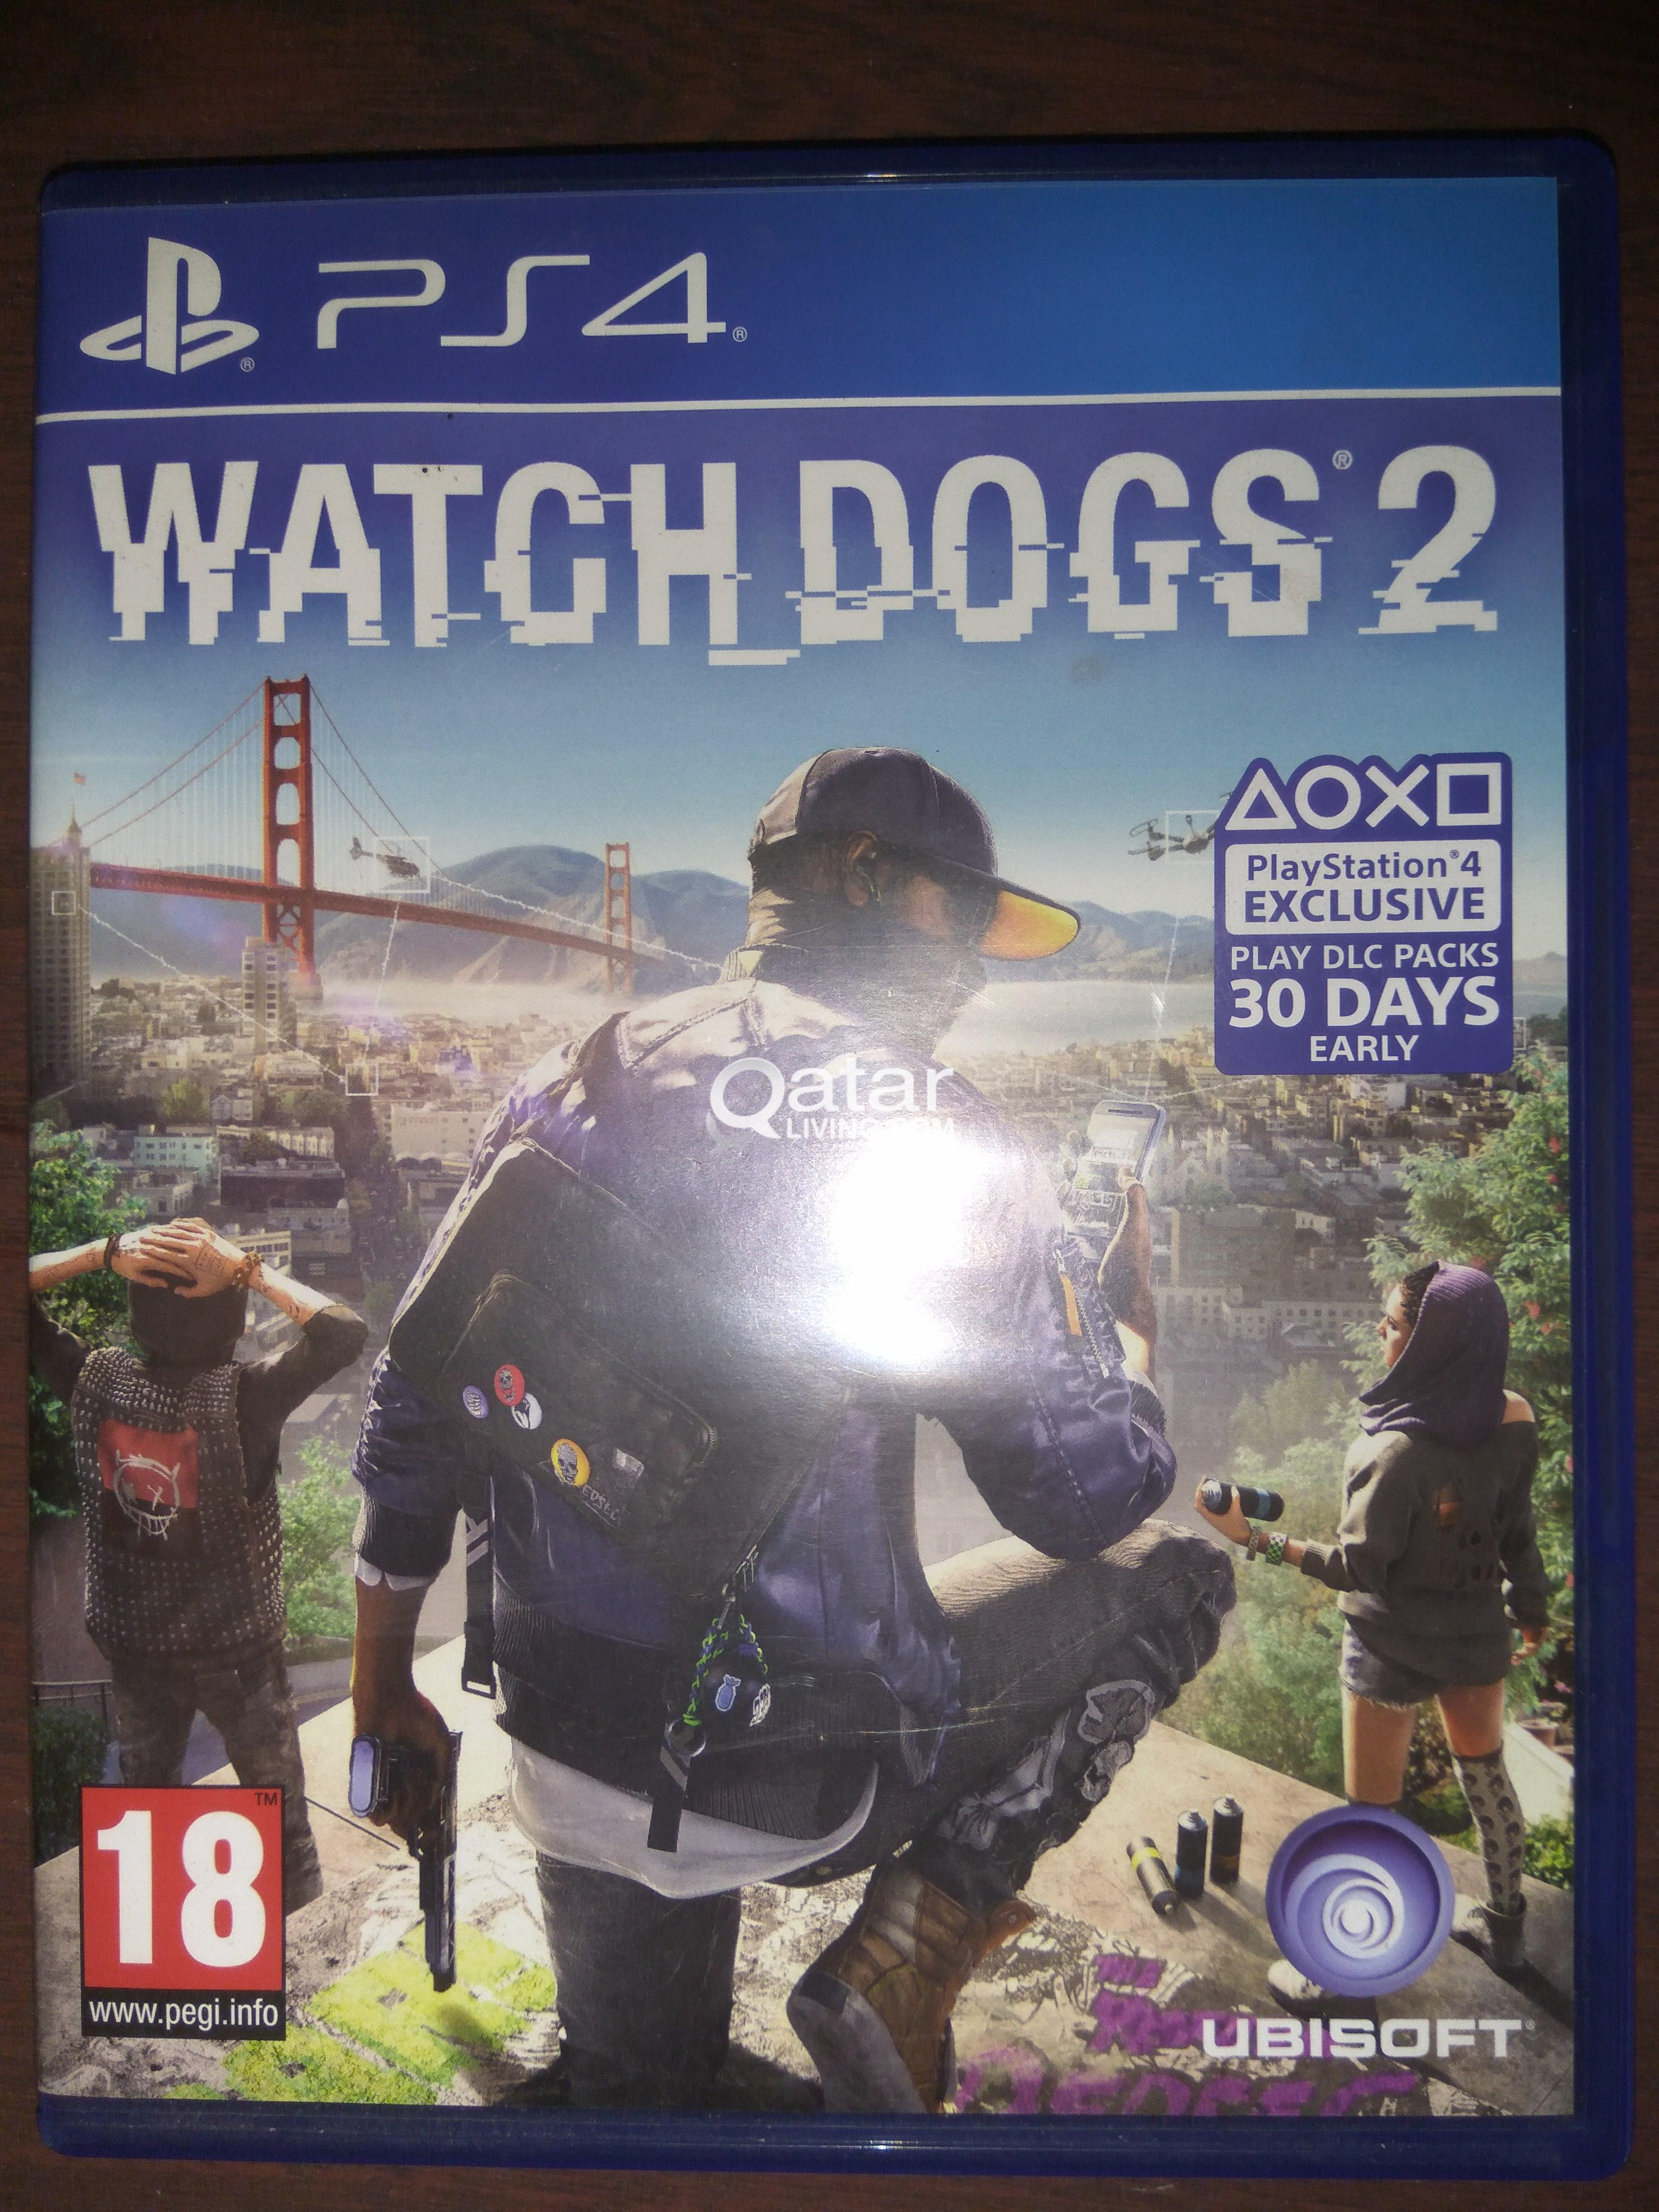 Watch Dogs 2 Ps4 Qatar Living Sony Game Title